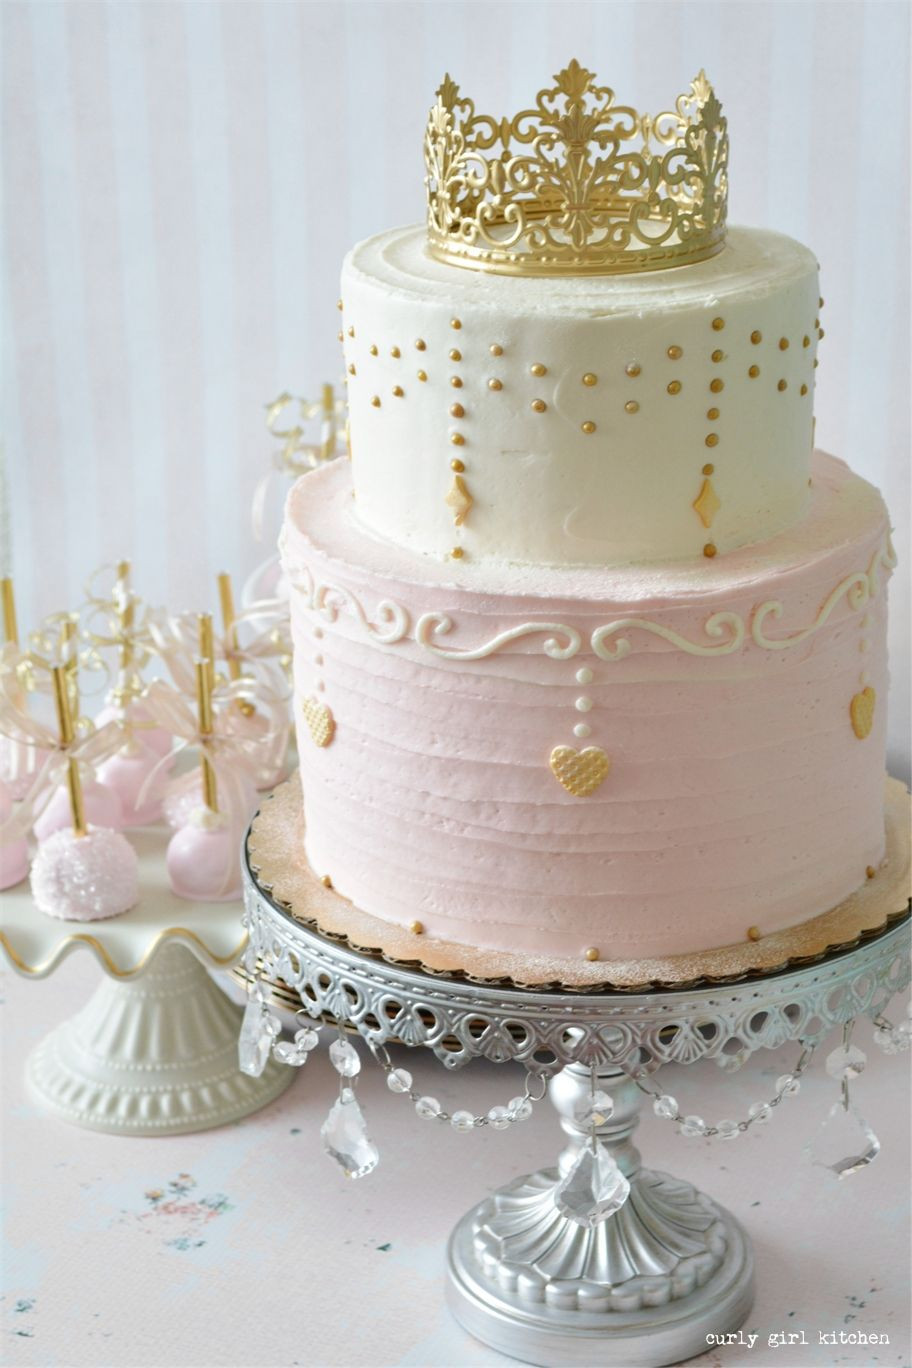 Best ideas about Birthday Cake For Girls . Save or Pin Pink and Gold Princess Party Cake in 2019 Now.